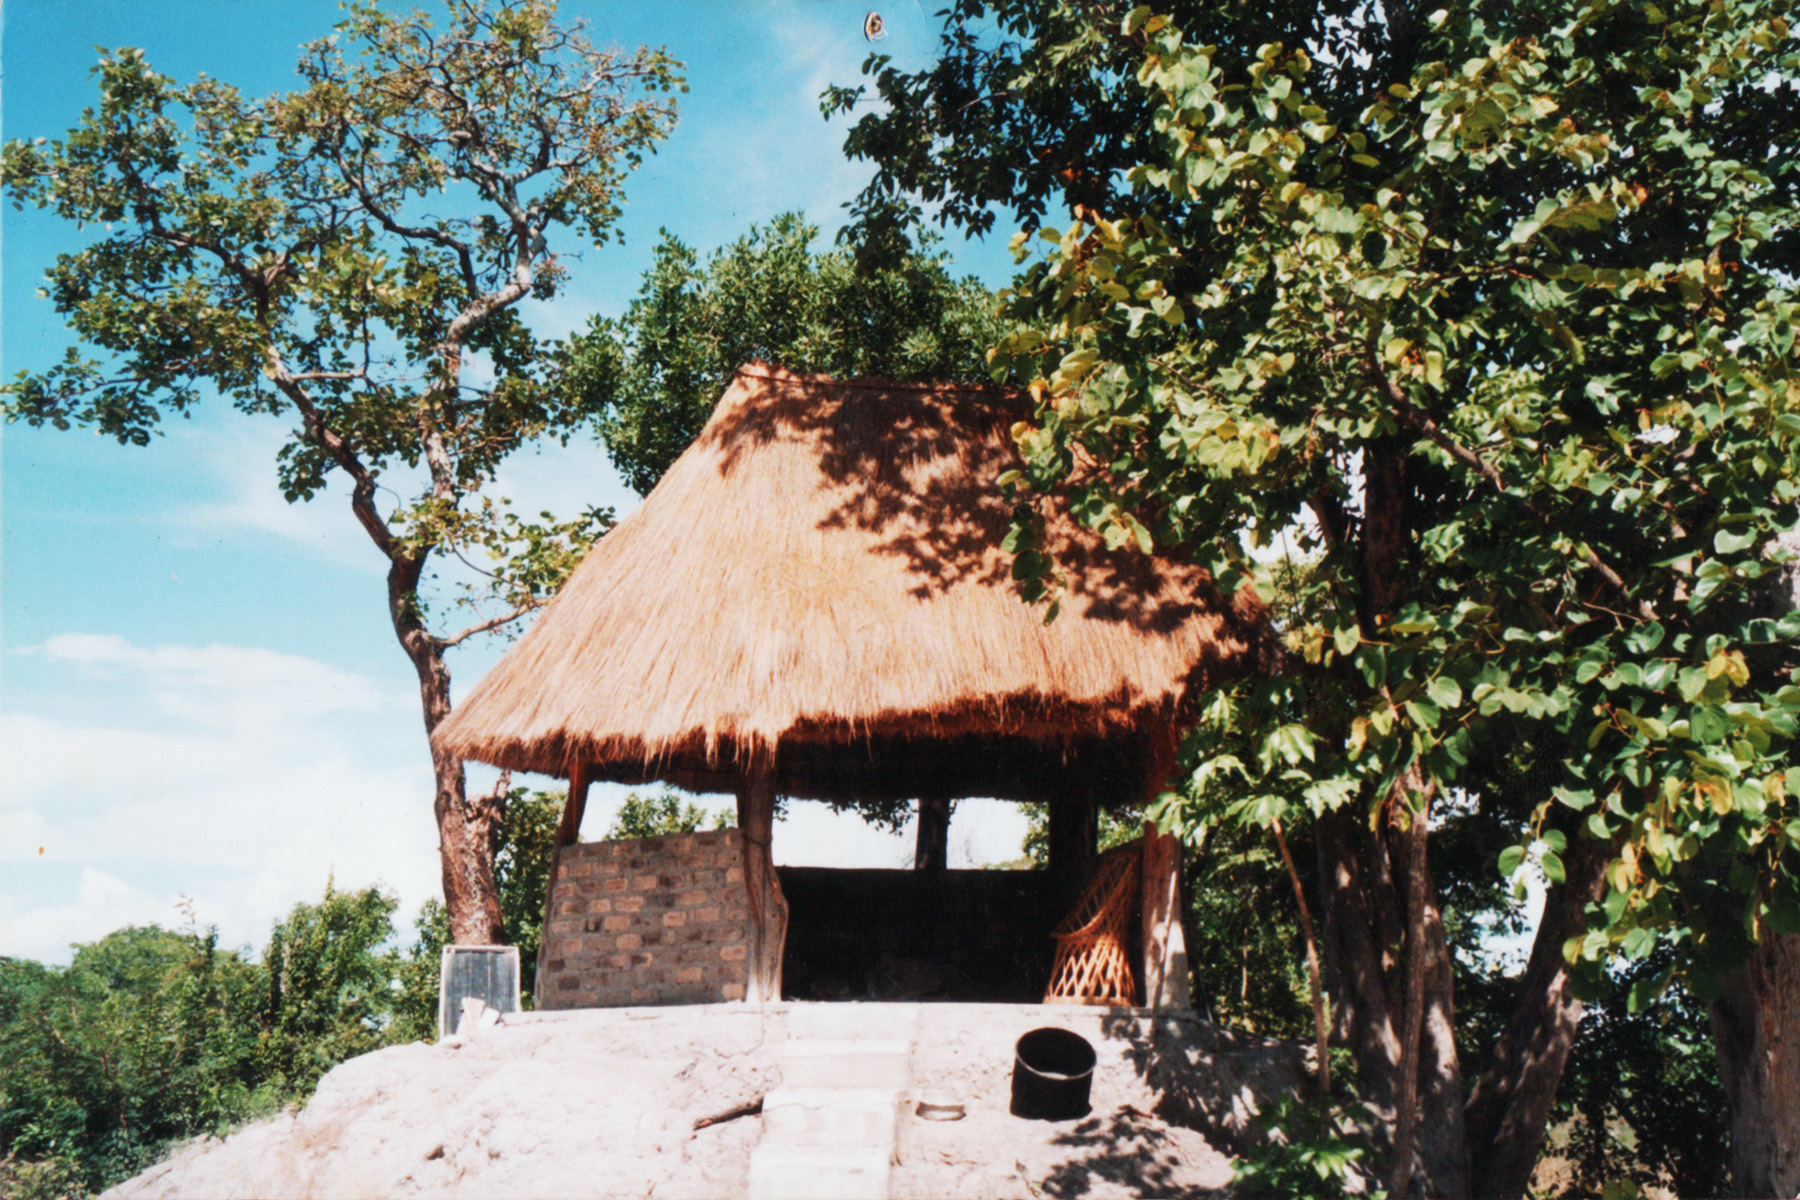 Zambia social insaka on top of a termite mound.jpg